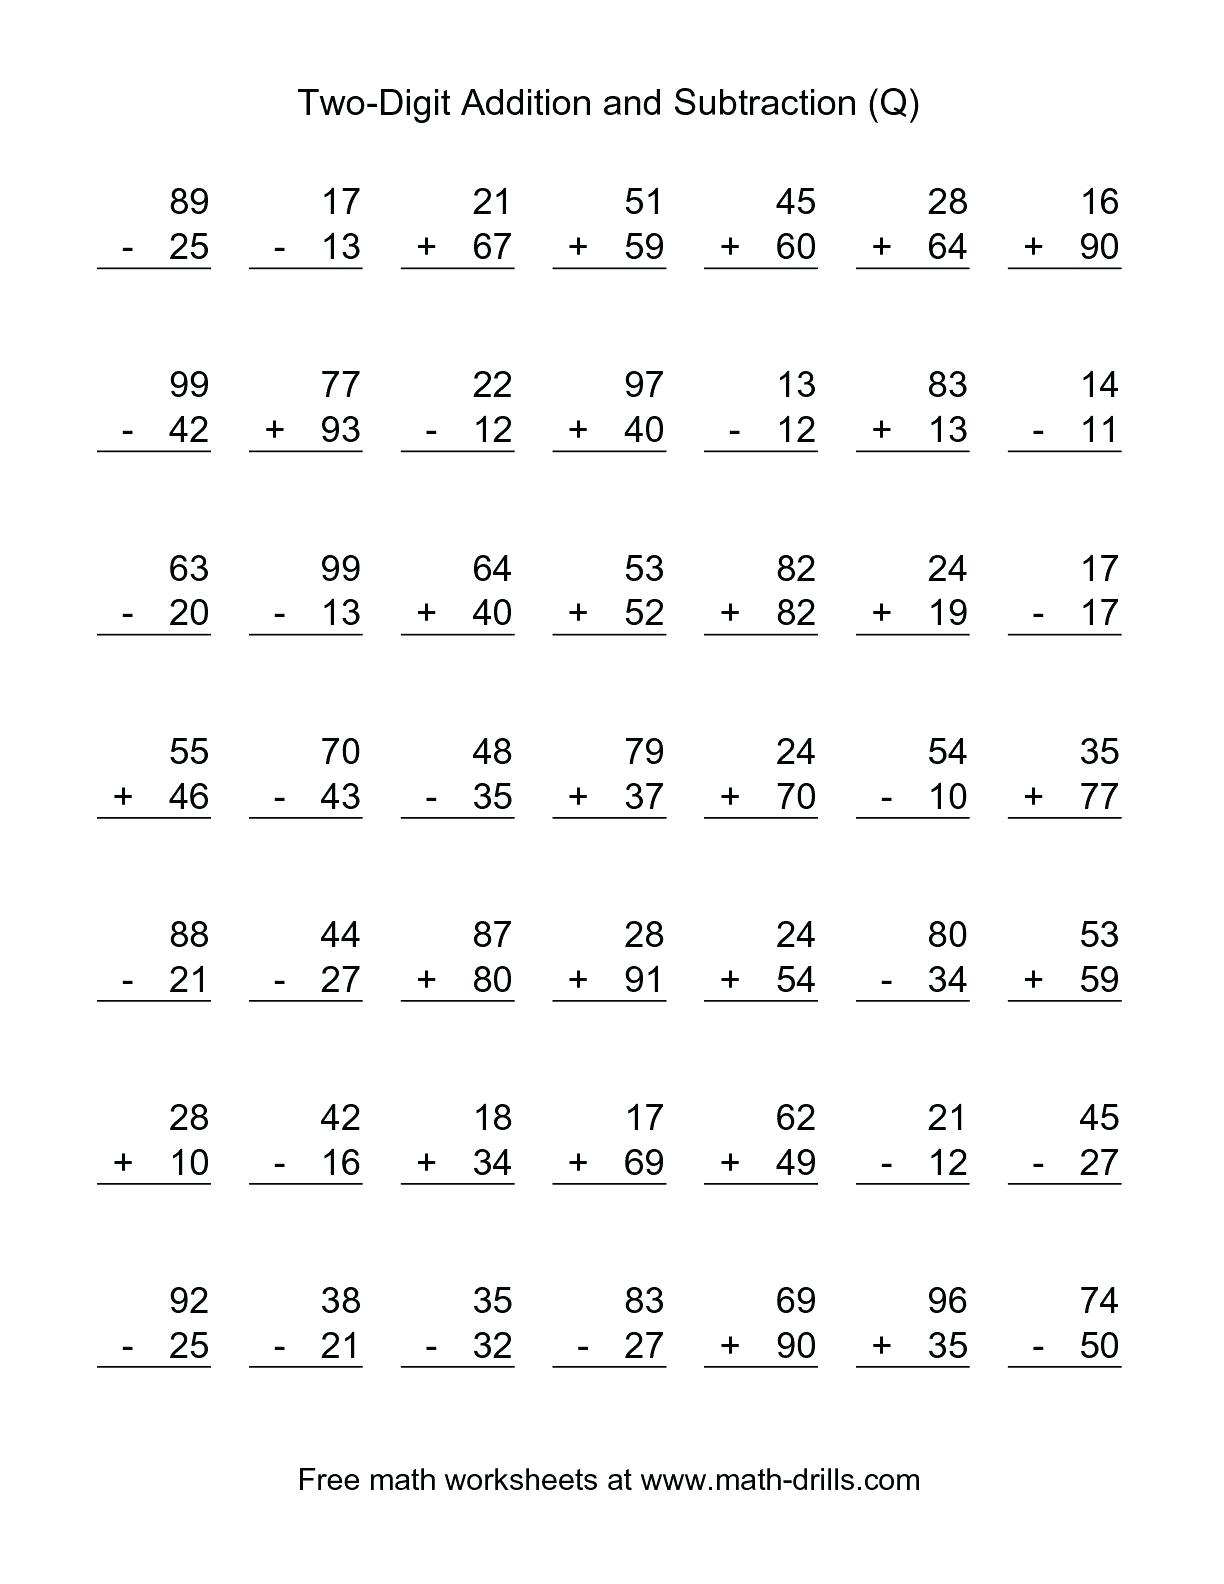 Free Printable 2Nd Grade Math Worksheets Counting Money Worksheets | Printable 2Nd Grade Math Worksheets